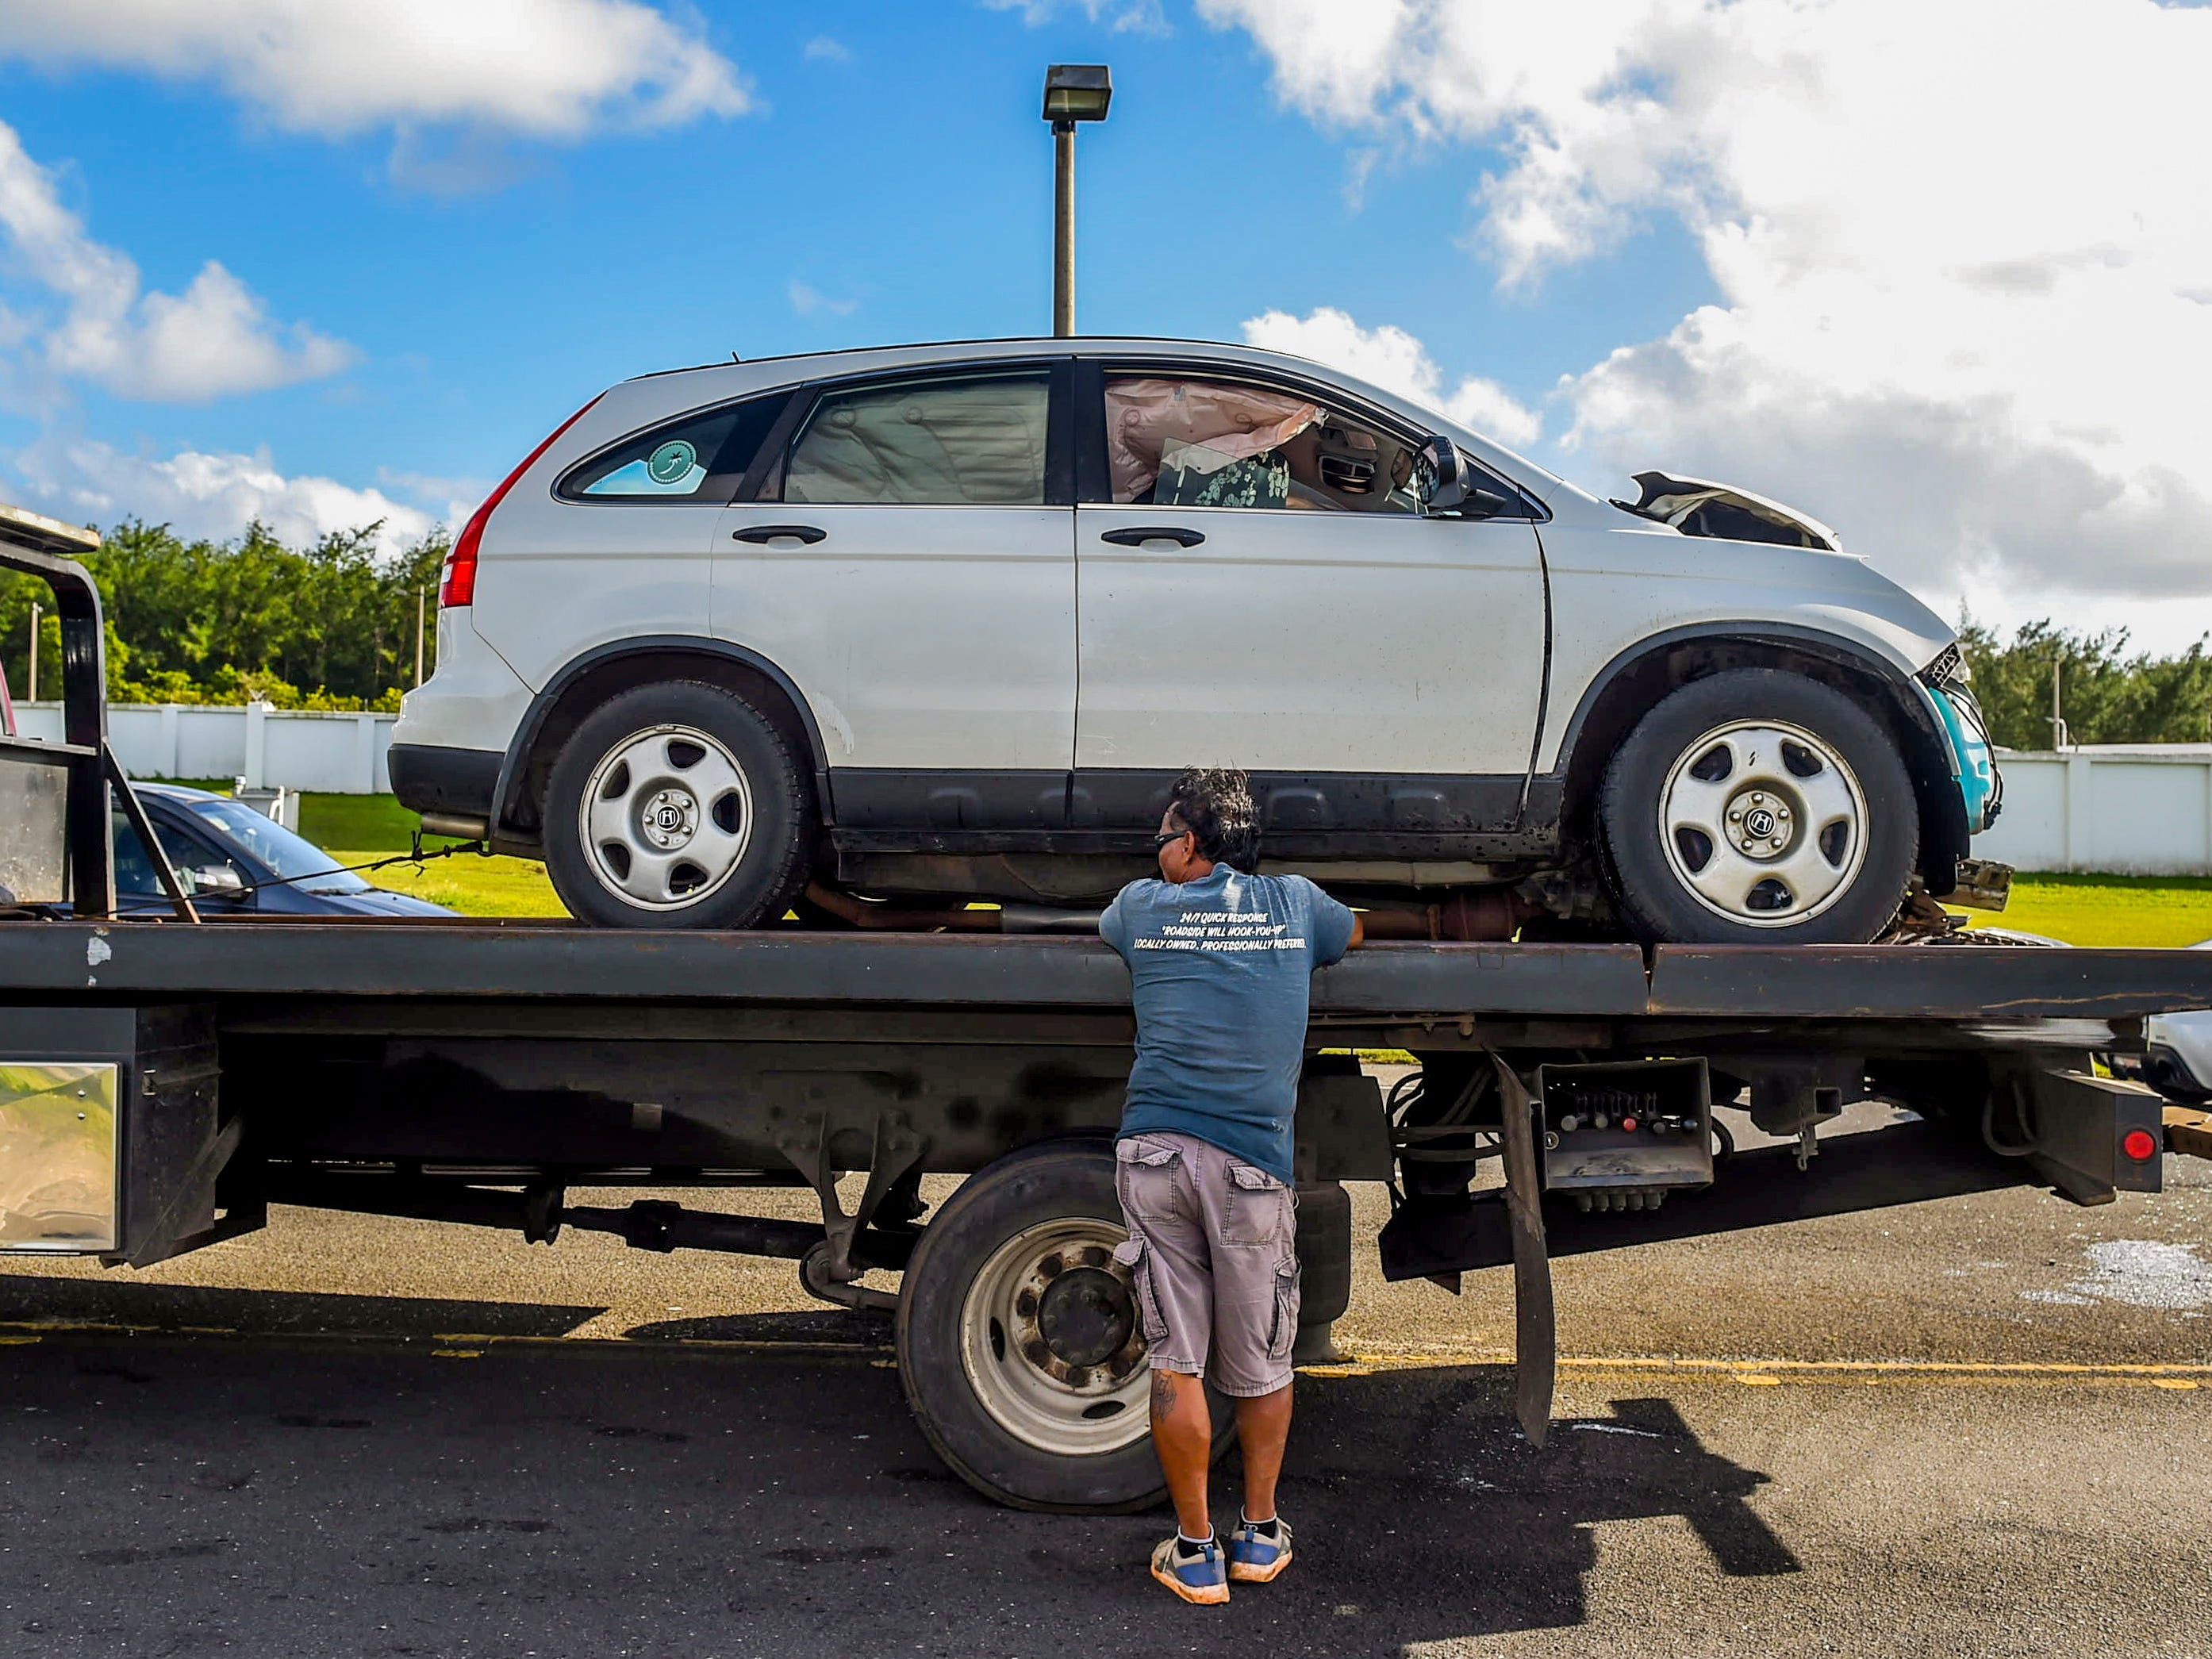 A Honda CR-V sports utility vehicle can be seen loaded on a vehicle transport as Guam Police Department officers conduct an investigation of a crash on Route 10A in Barrigada, Jan. 6, 2019.